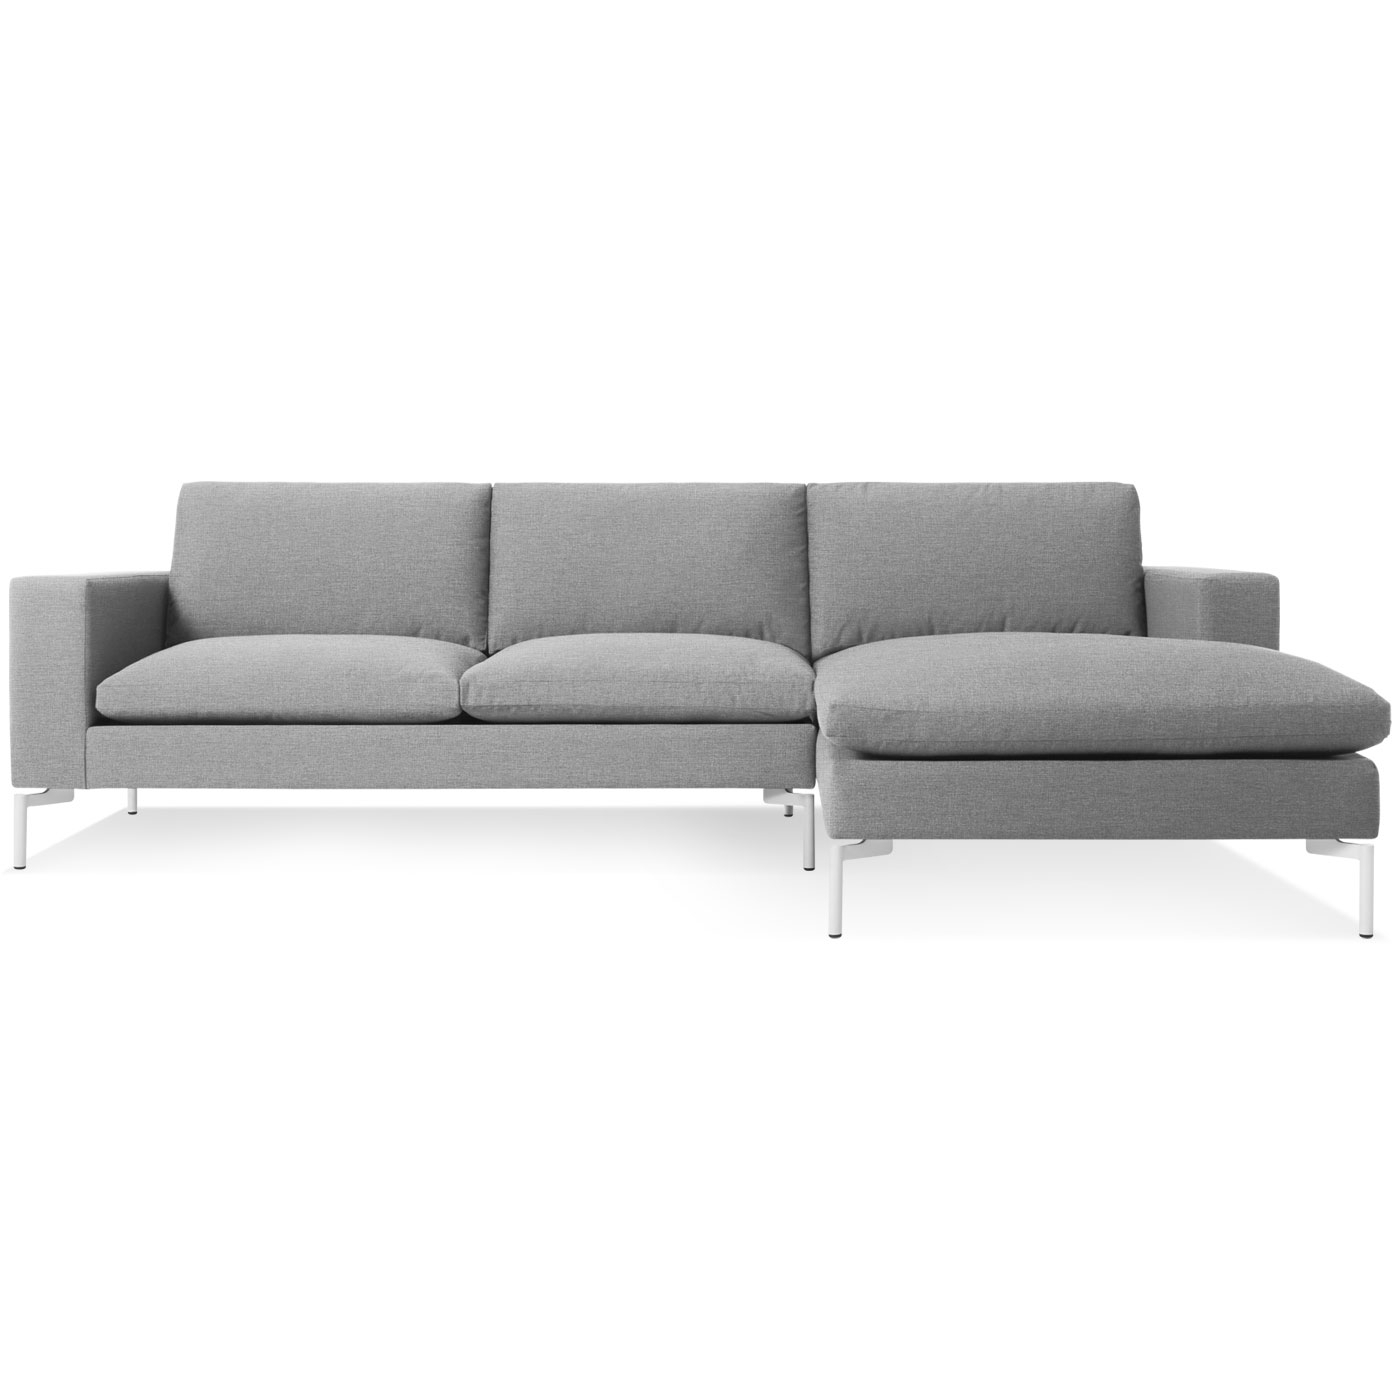 New Standard Modern Chaise Sofa – Left Chaise (View 8 of 15)